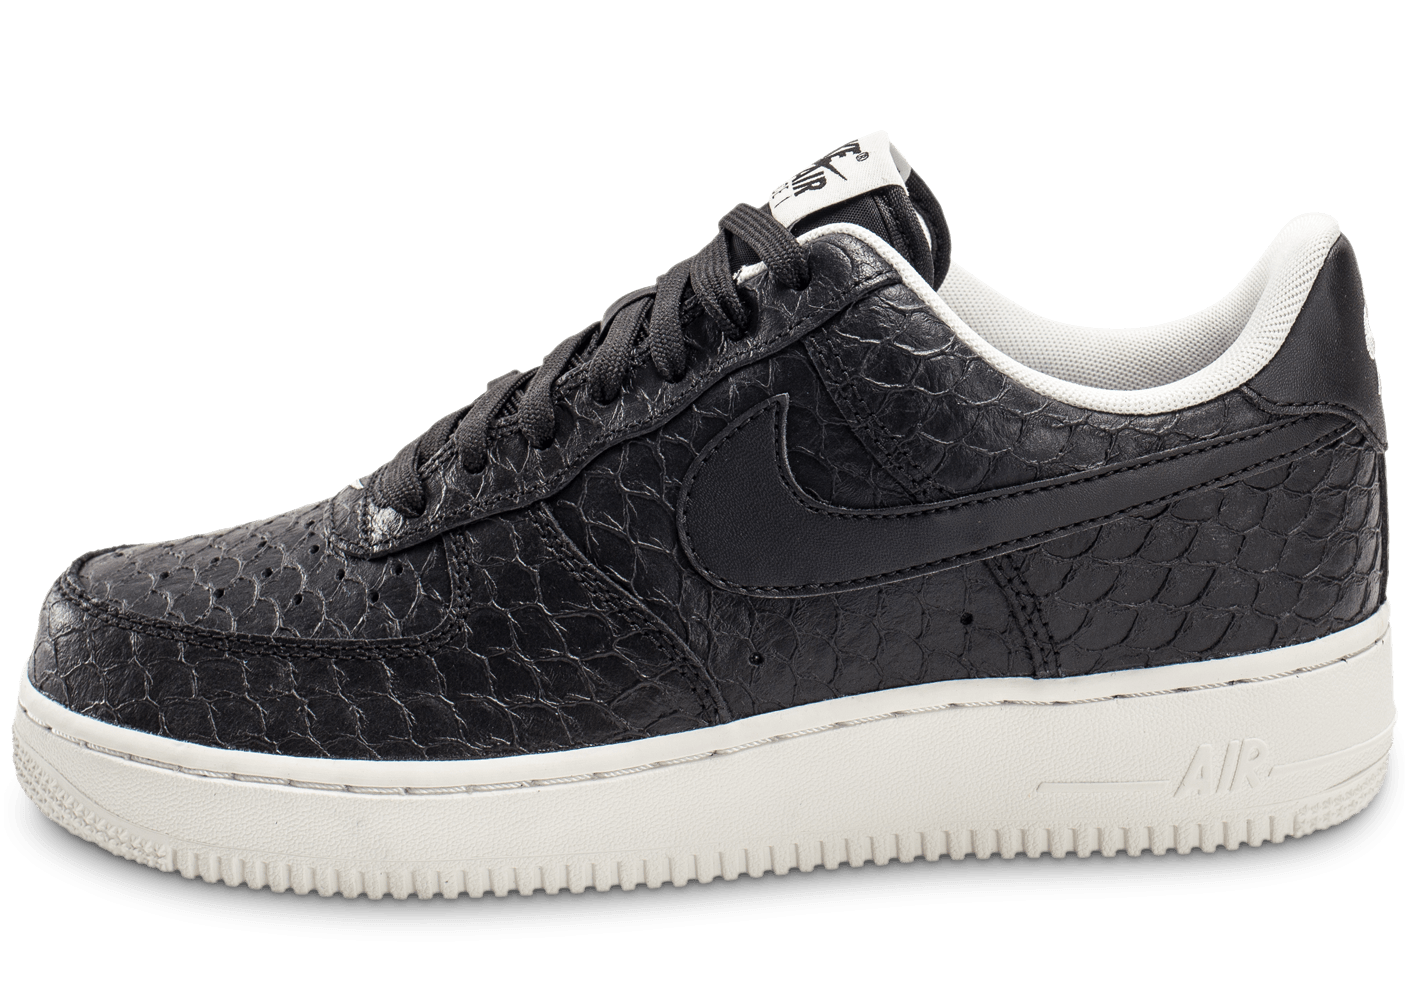 nouveau concept 74ec0 86050 nike air force noir semelle marron,Nike Air Force 1 basse ...